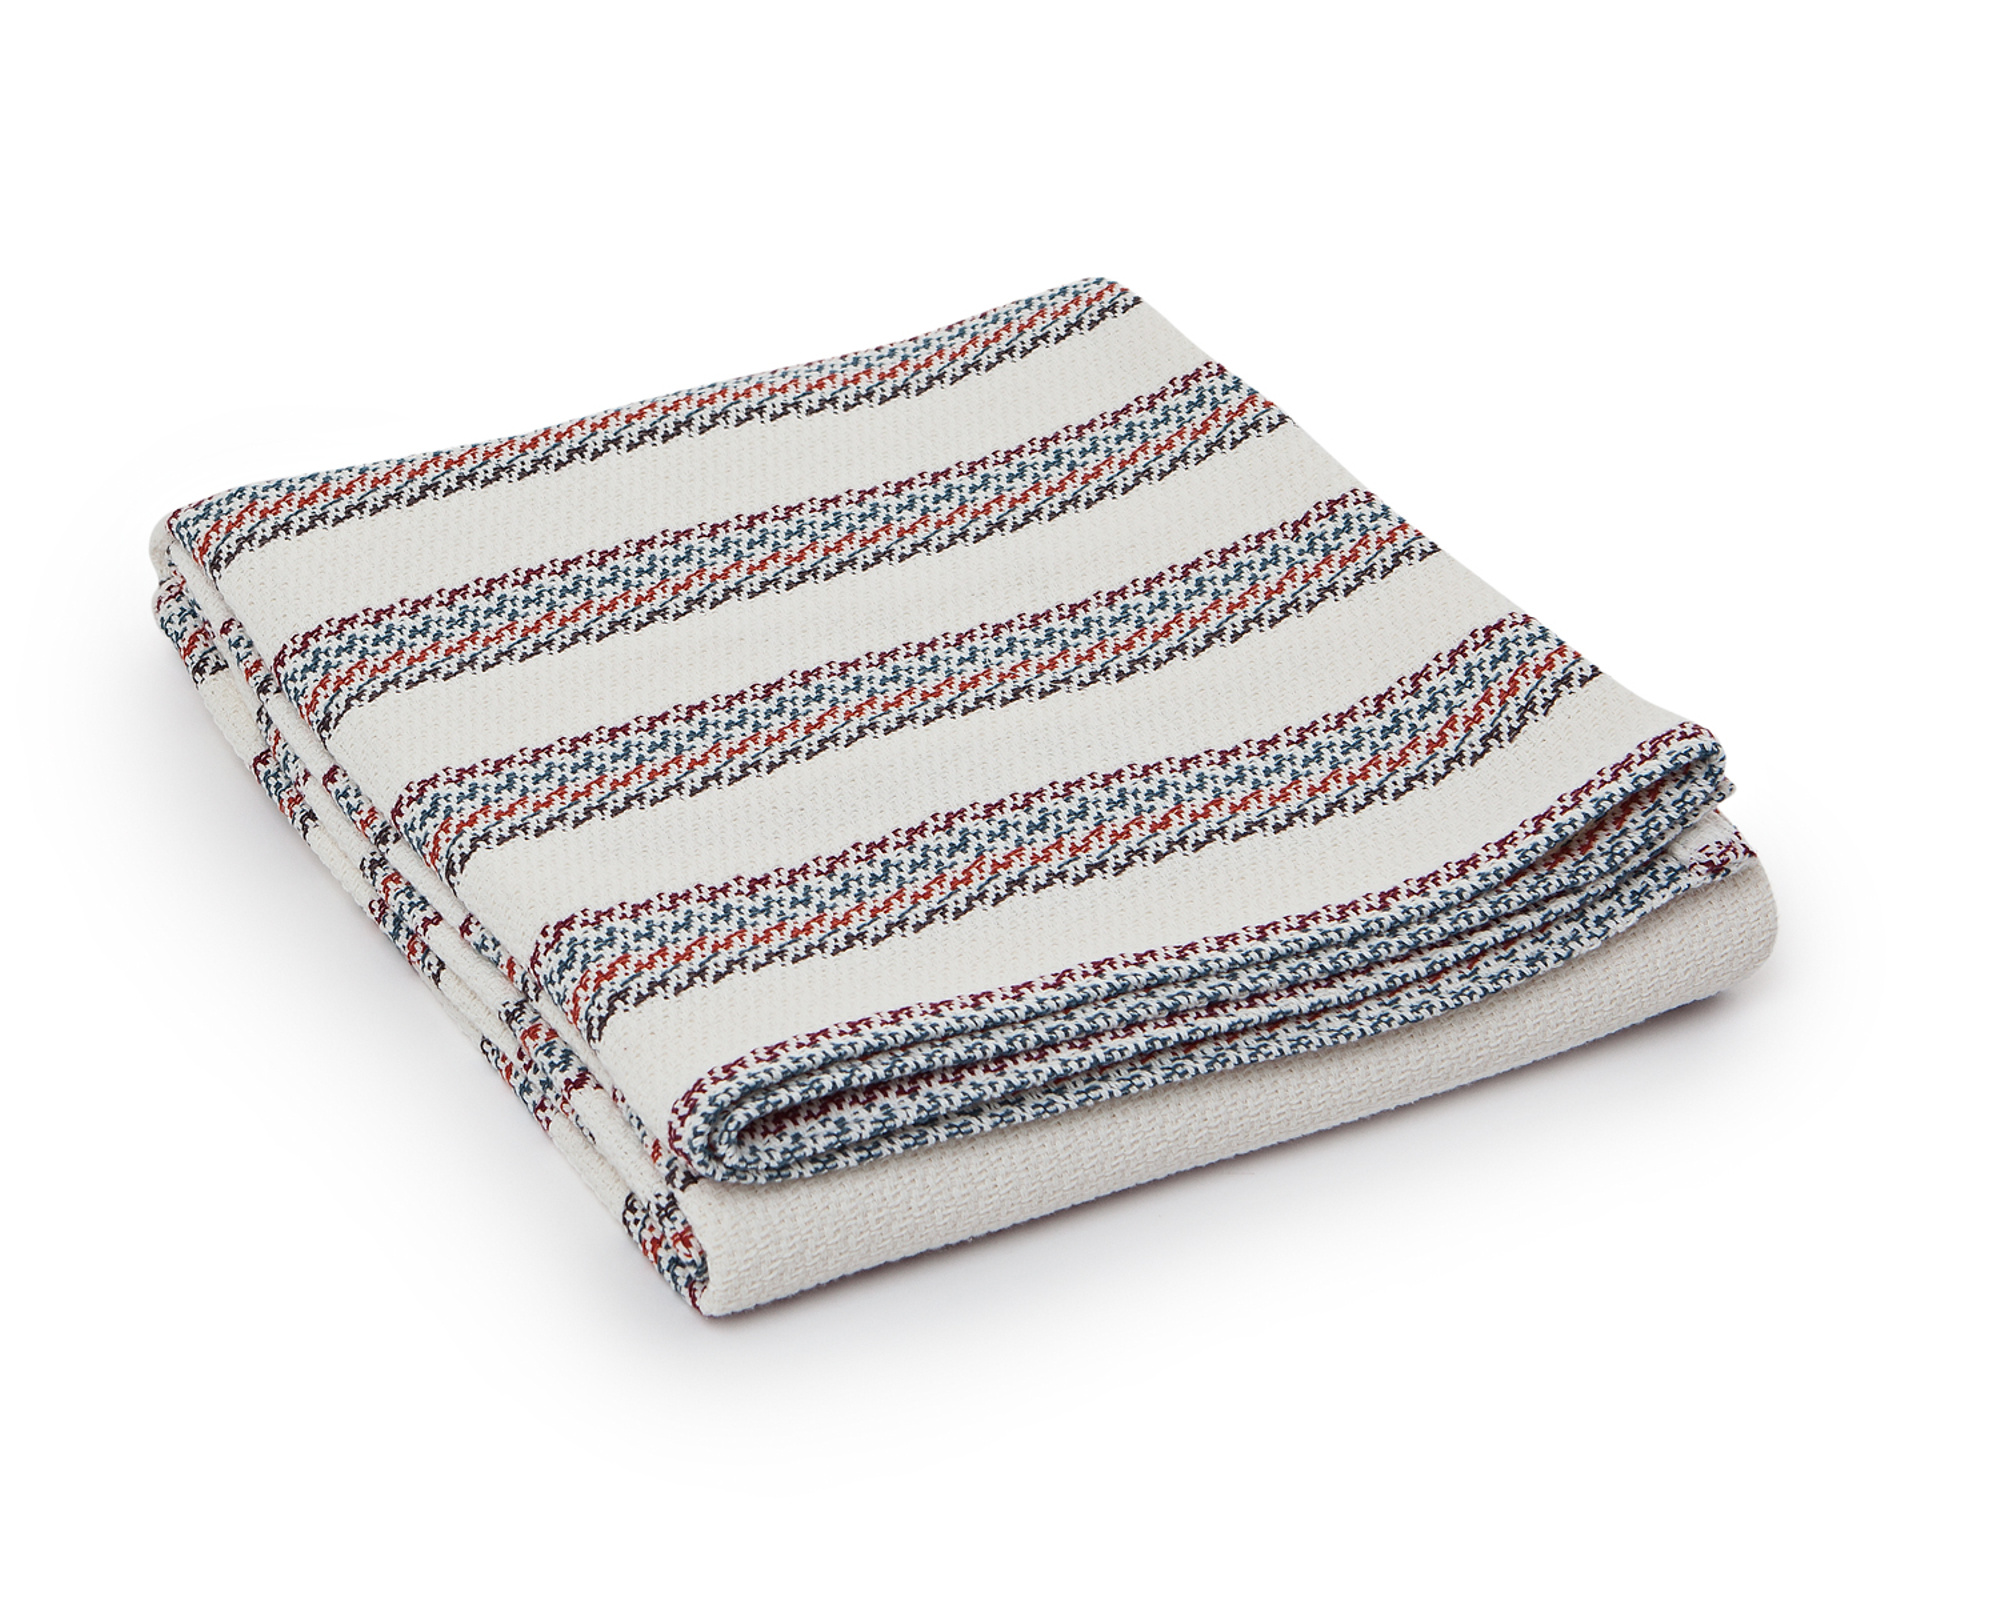 Urban Cotton Blanket